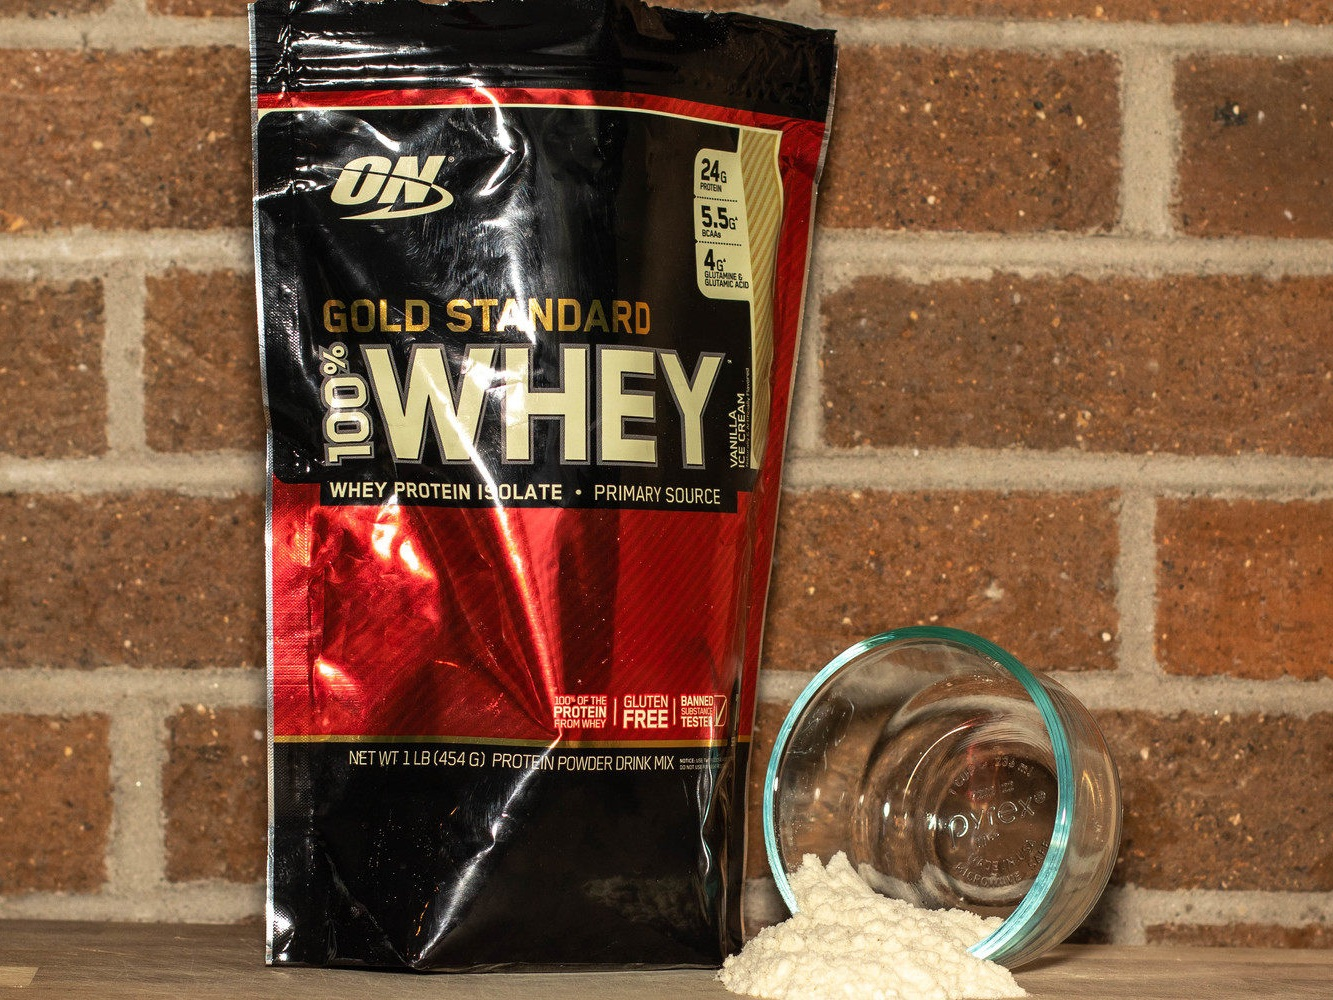 Optimum Nutrition Gold Standard 100% Whey protein powder comes in the most sizes and flavors of any of the protein powders we considered. That's one reason why we think it is the best option for most people.   Photo by John Carr